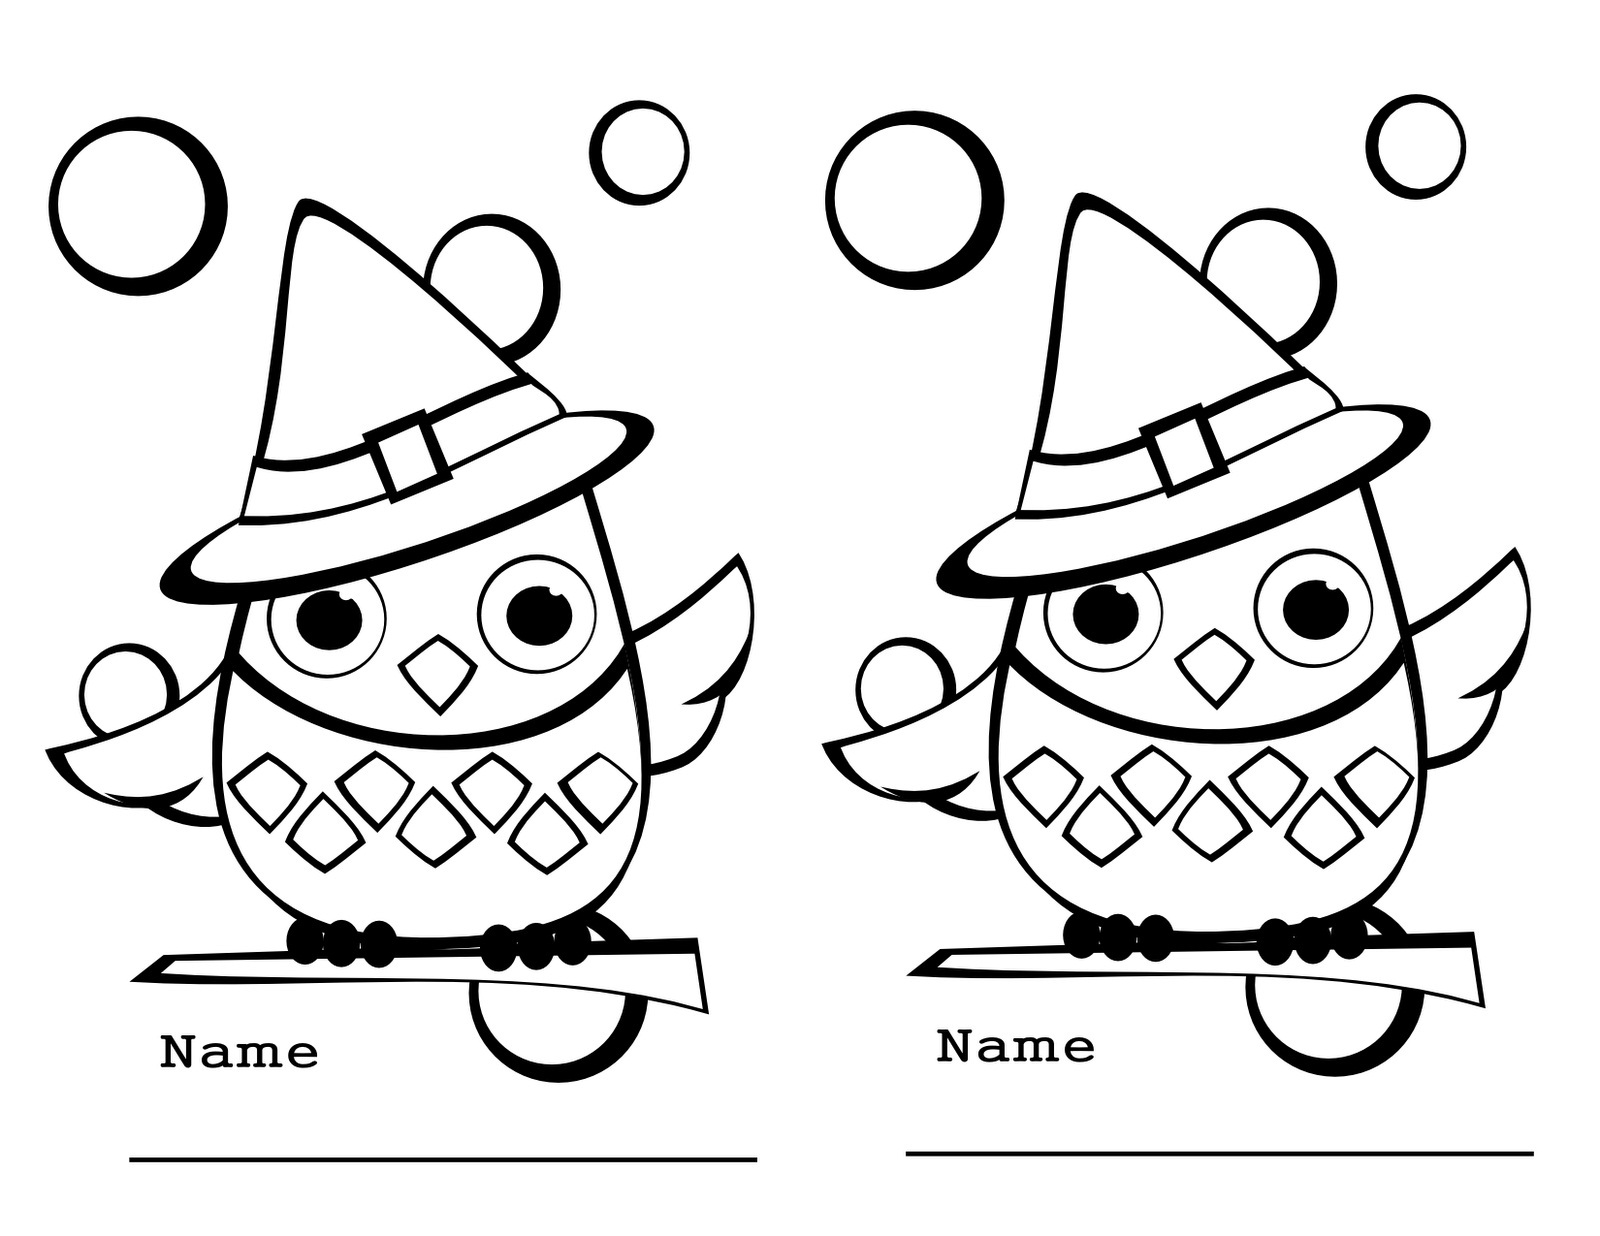 Free Printable Kindergarten Coloring